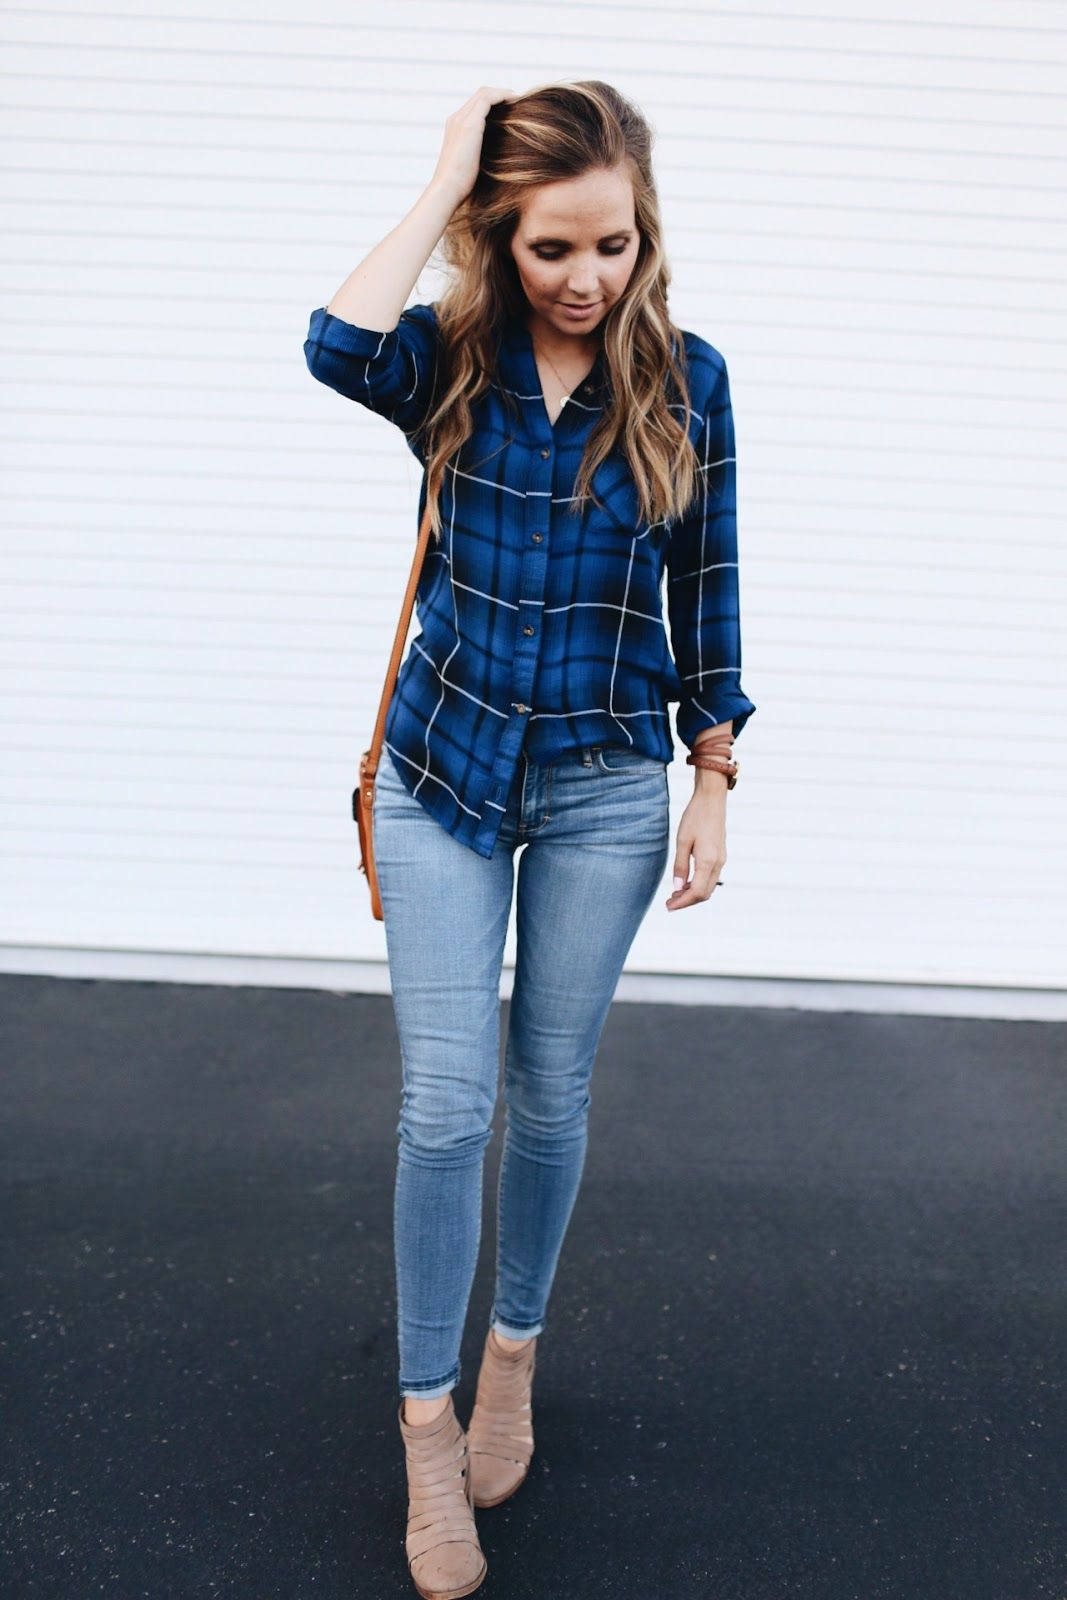 Flannel outfits for women  THE SHIRT YOU CAN WEAR YEAR ROUND   s p r i n g